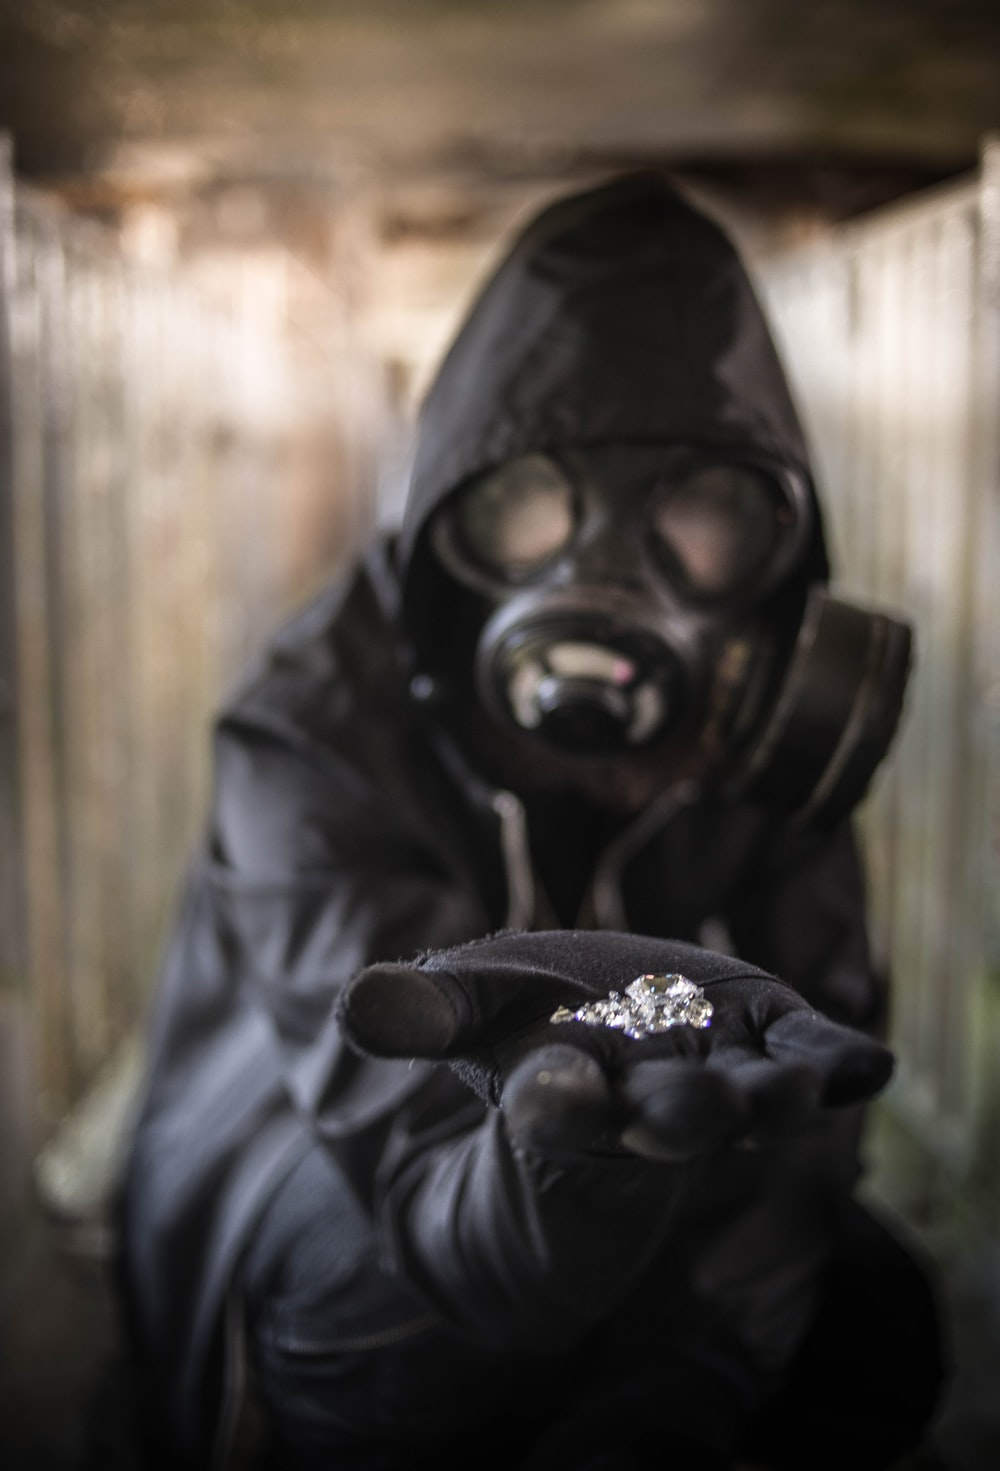 person wearing a gas-mask close-up photography